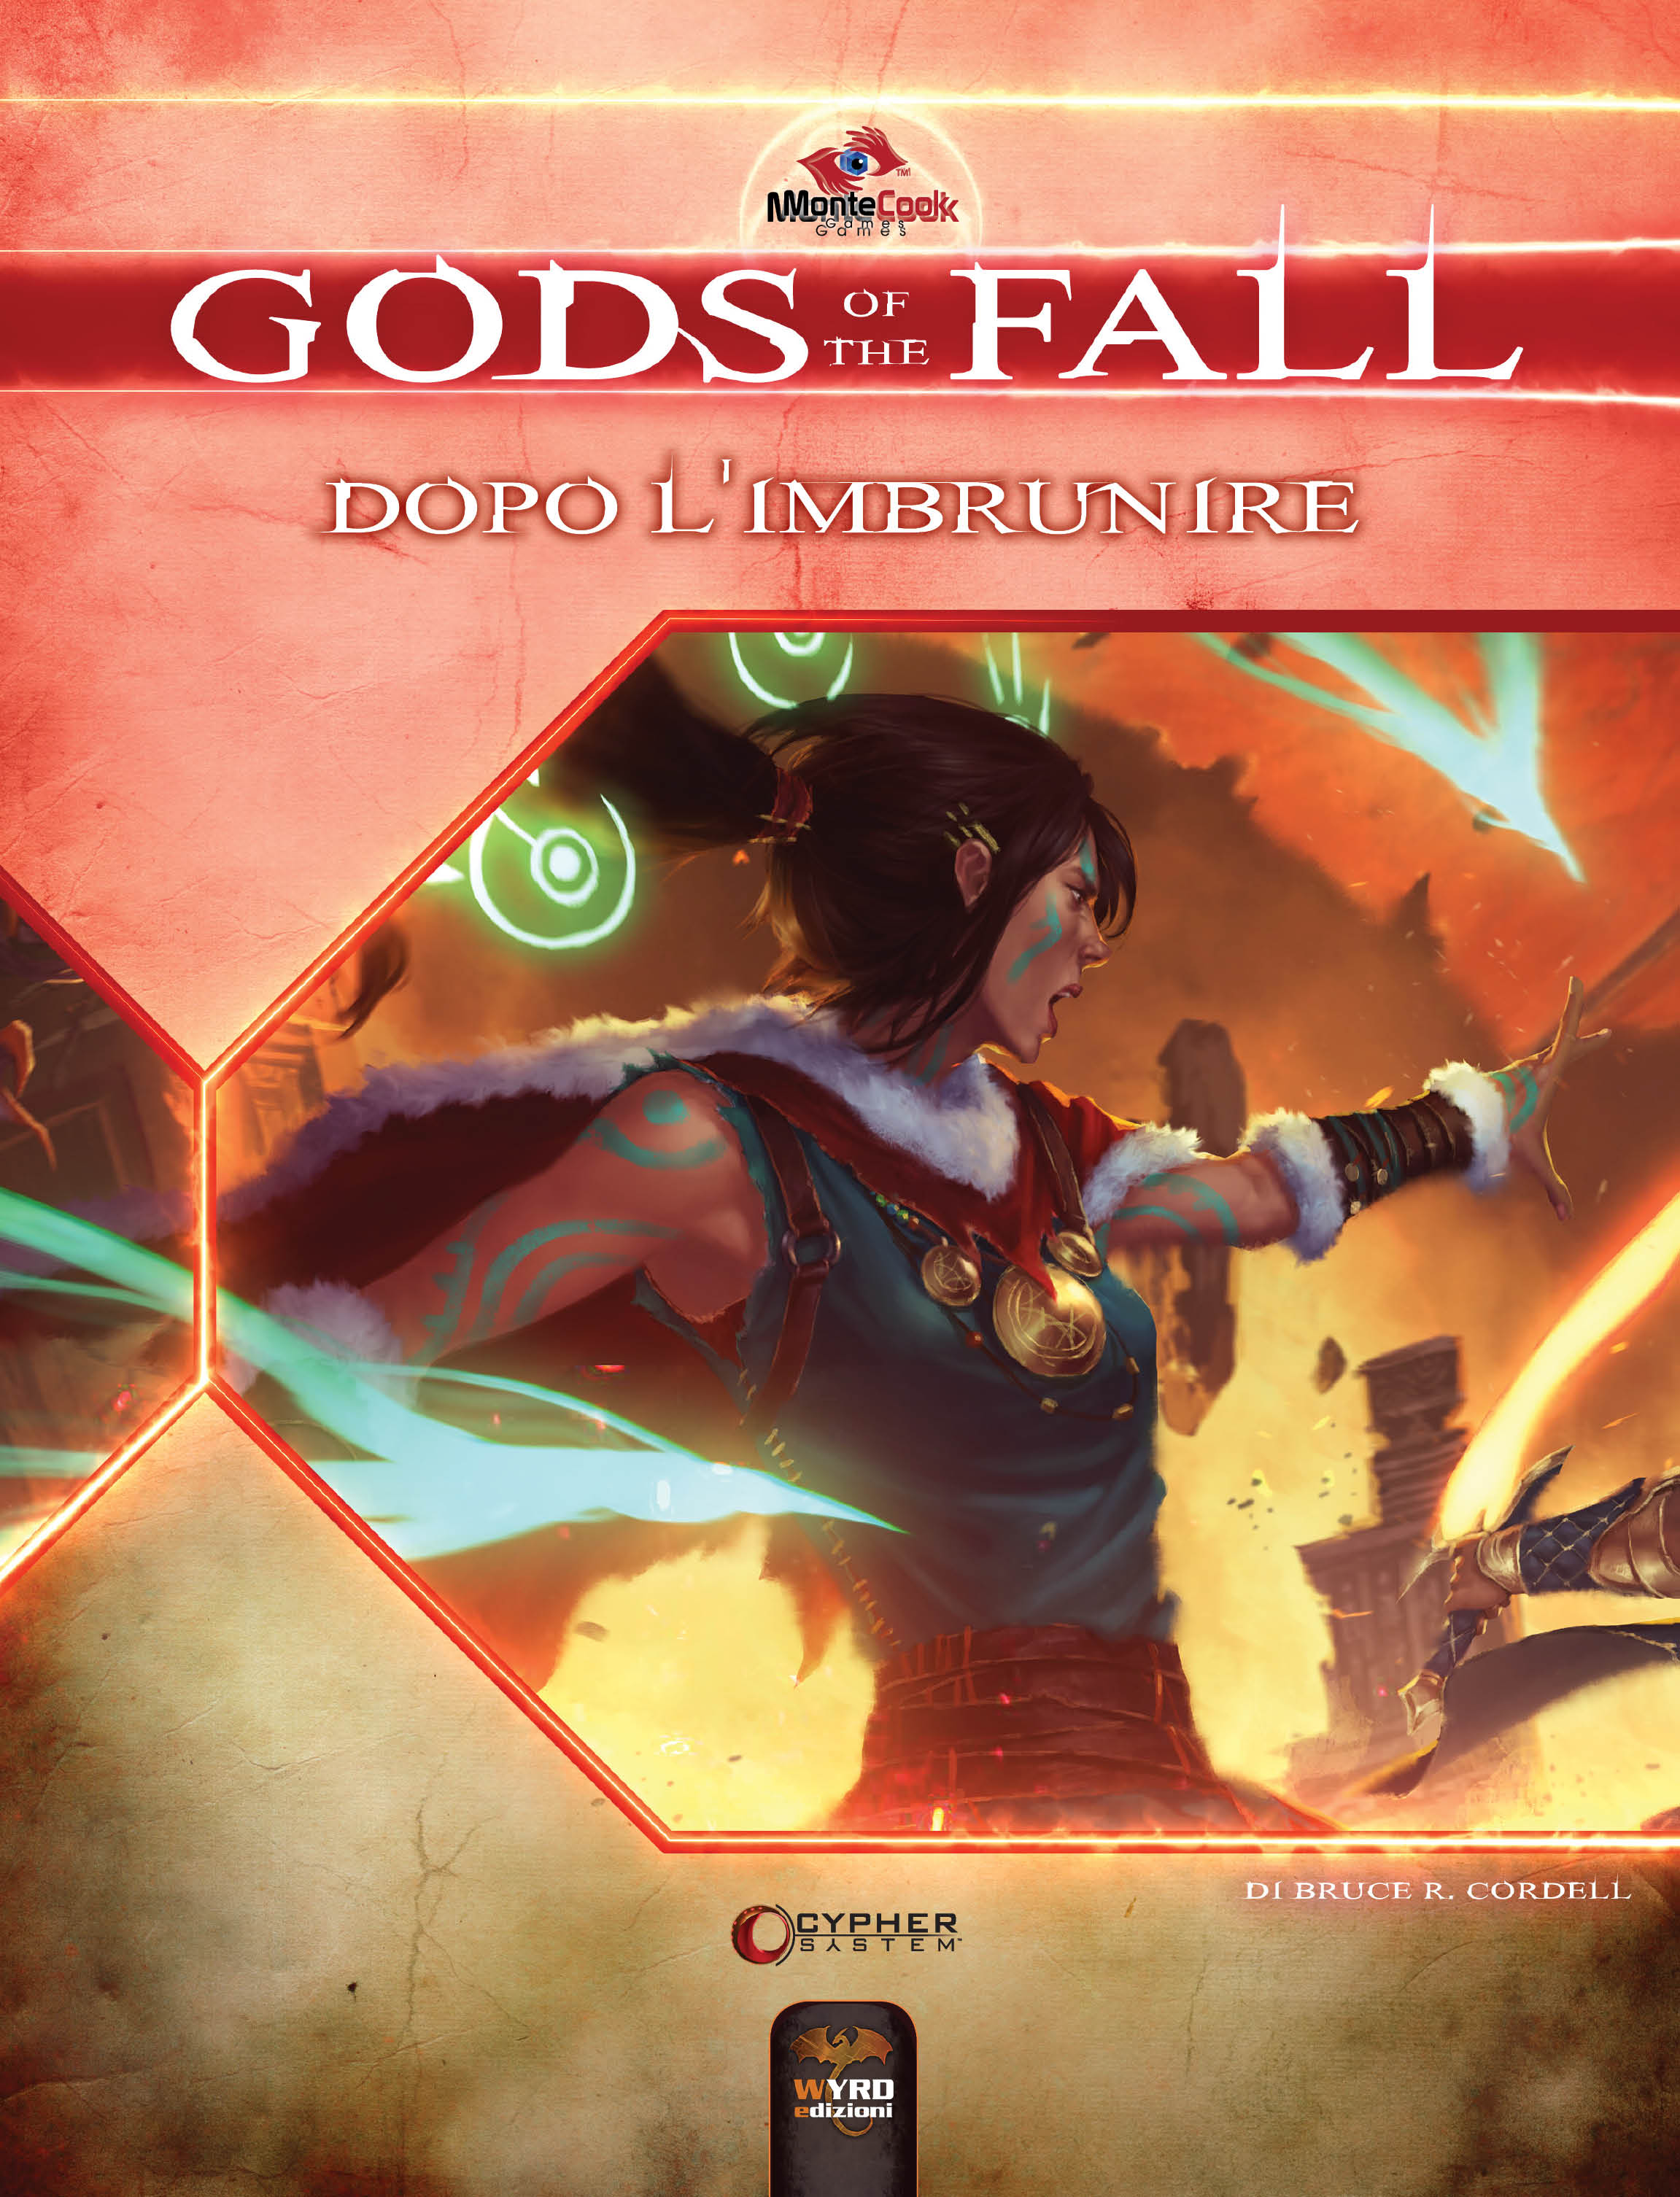 GODS OF THE FALL - GLIMMER 12: DOPO L'IMBRUNIRE